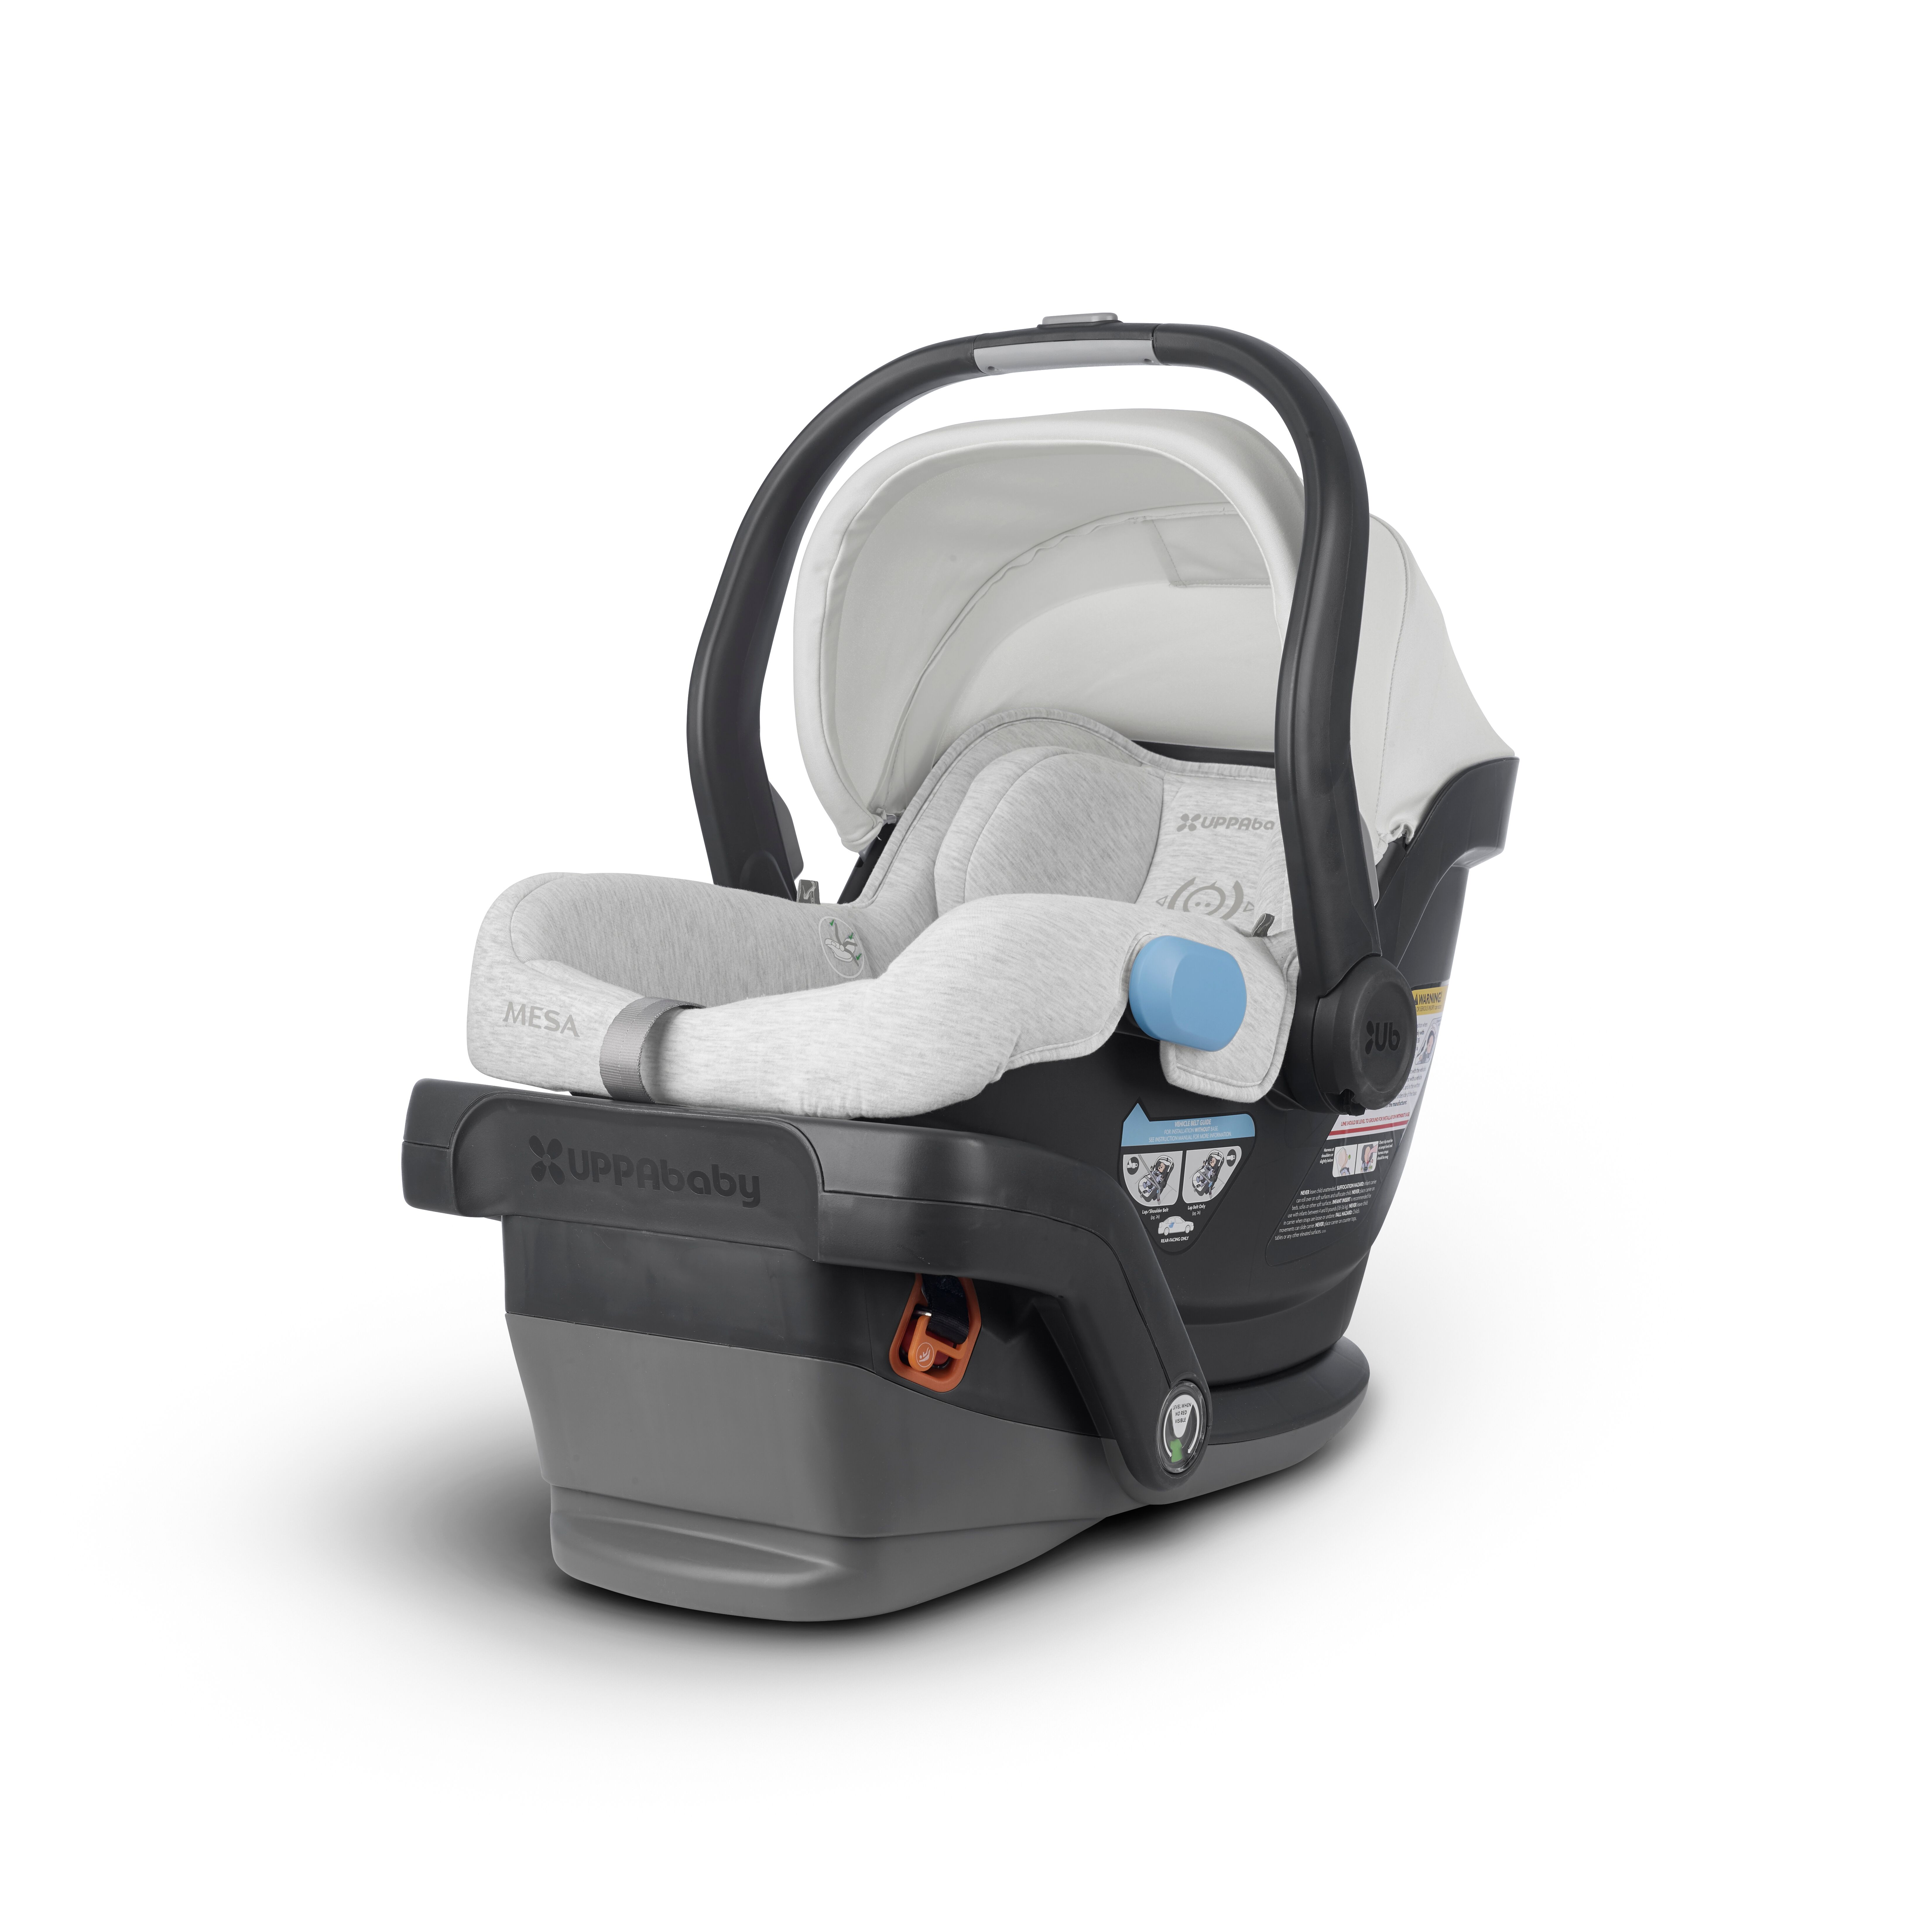 New Uppababy Mesa In Bryce Affordable Infant Car Seats That Wont Compromise Safety Now At Sugarbabies